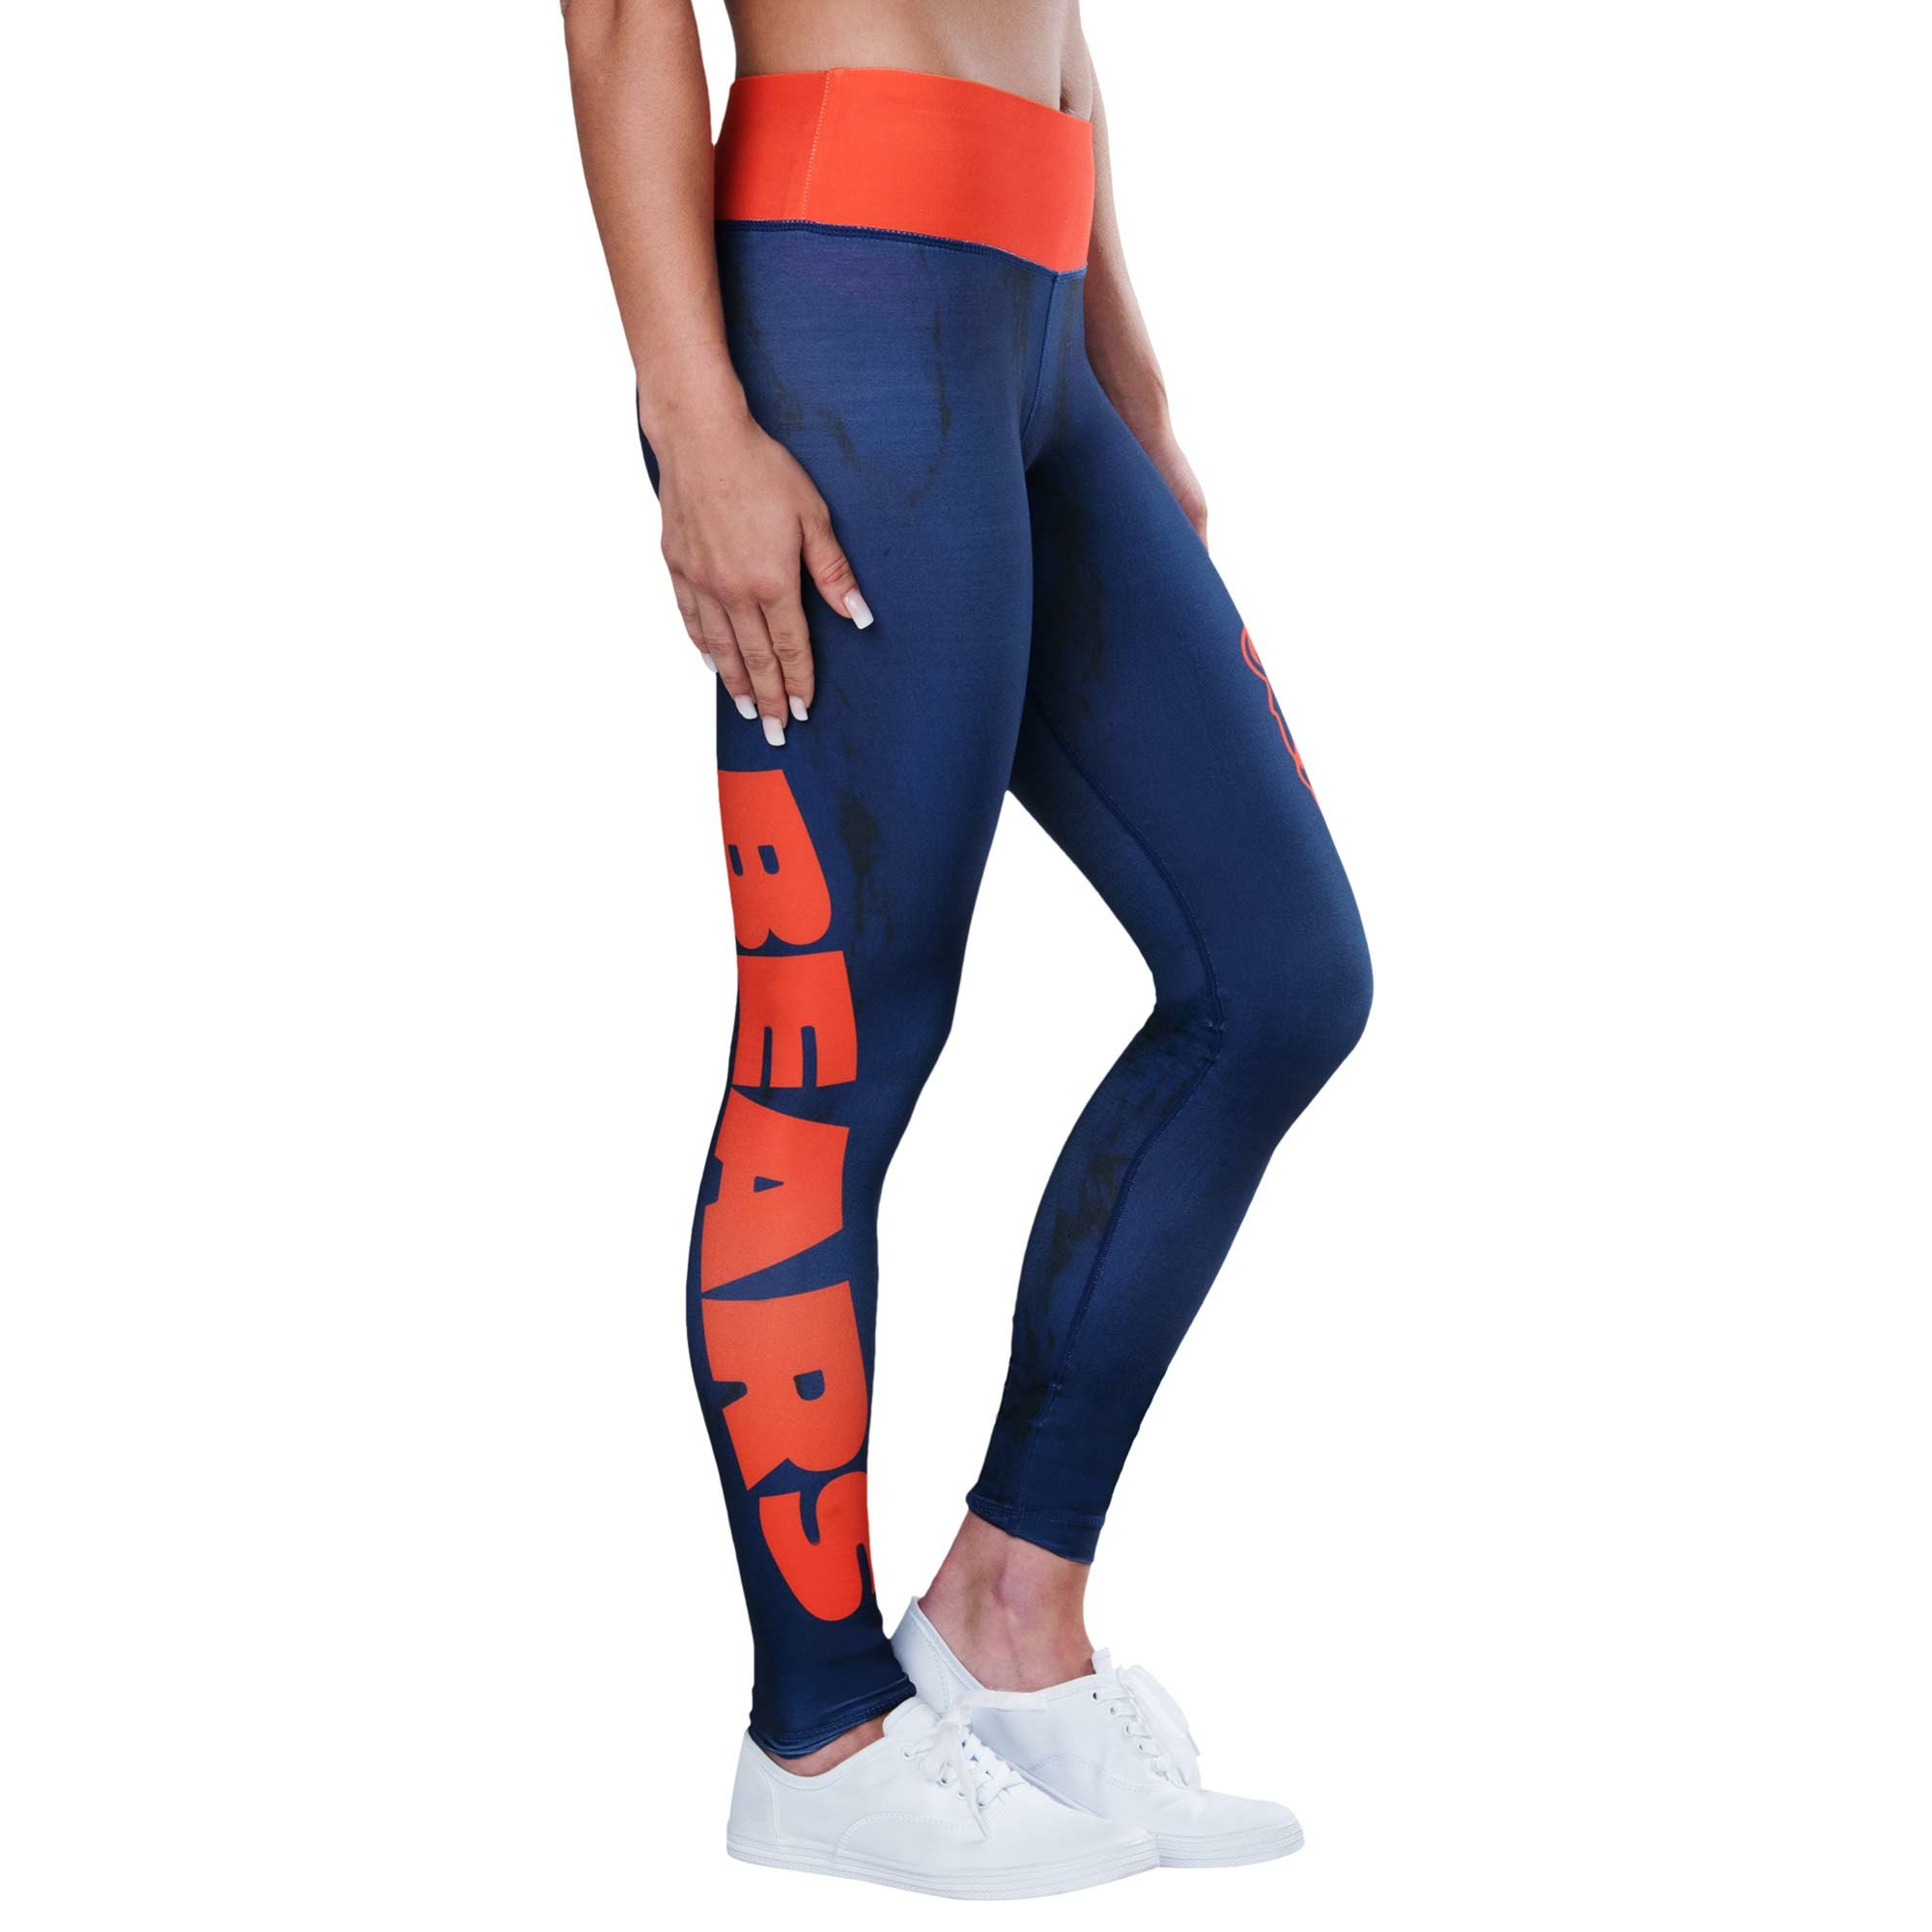 269473e29b311 Details about Forever Collectibles NFL Women's Chicago Bears Marble  Wordmark Leggings